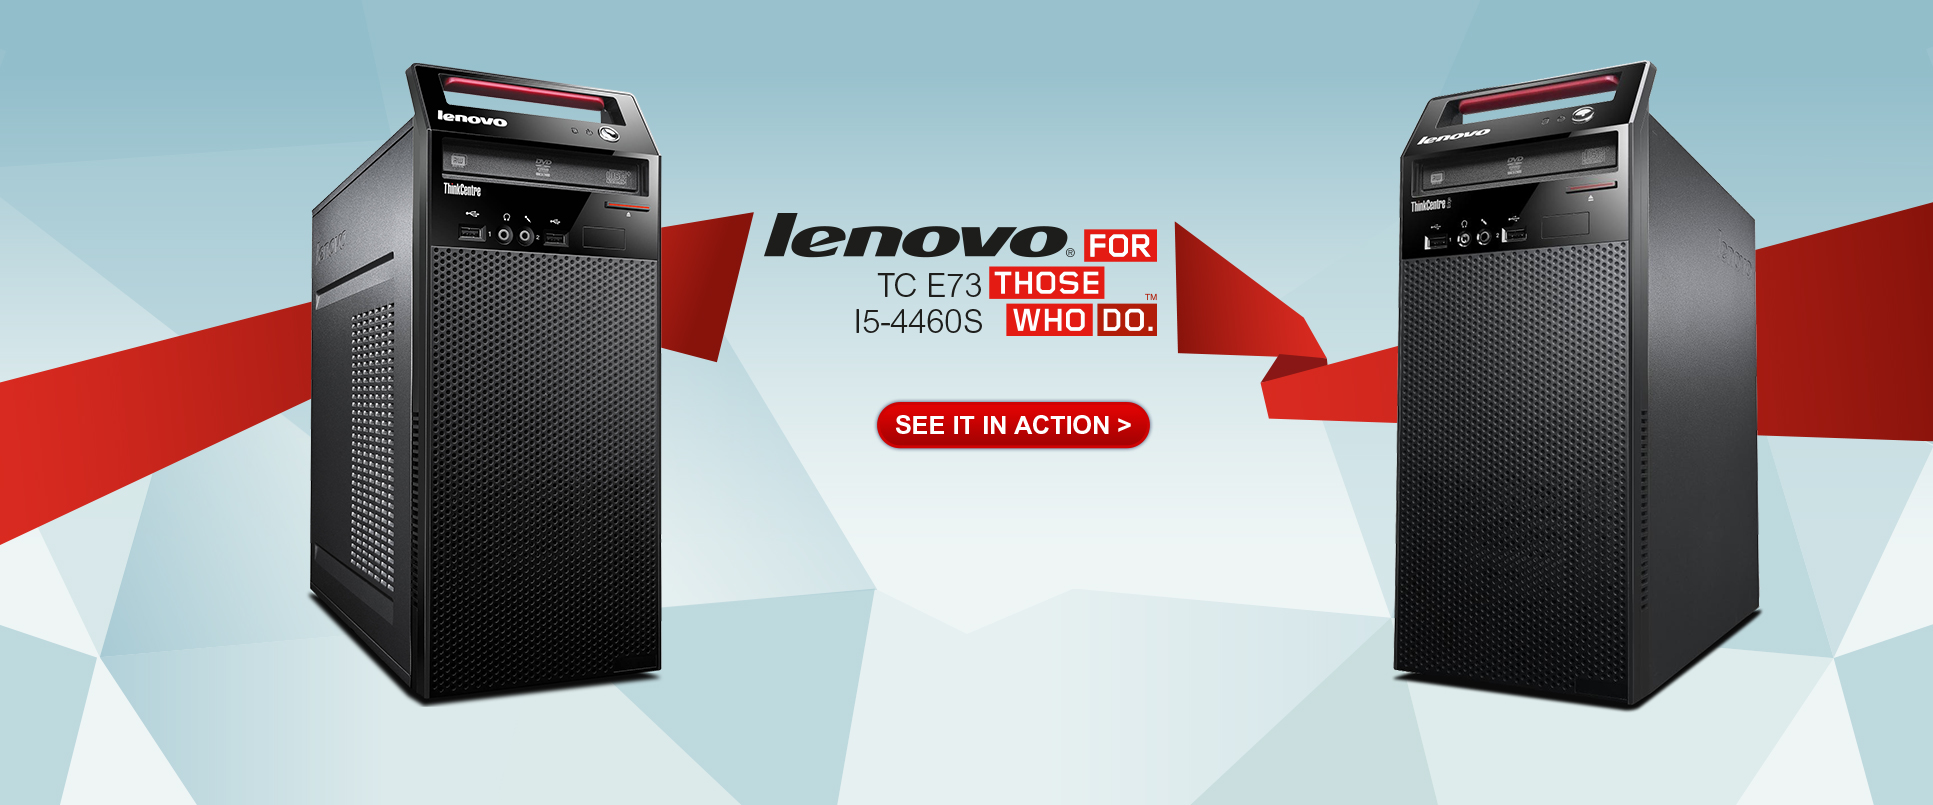 Lenovo TC E73 TOWER I5-4460S